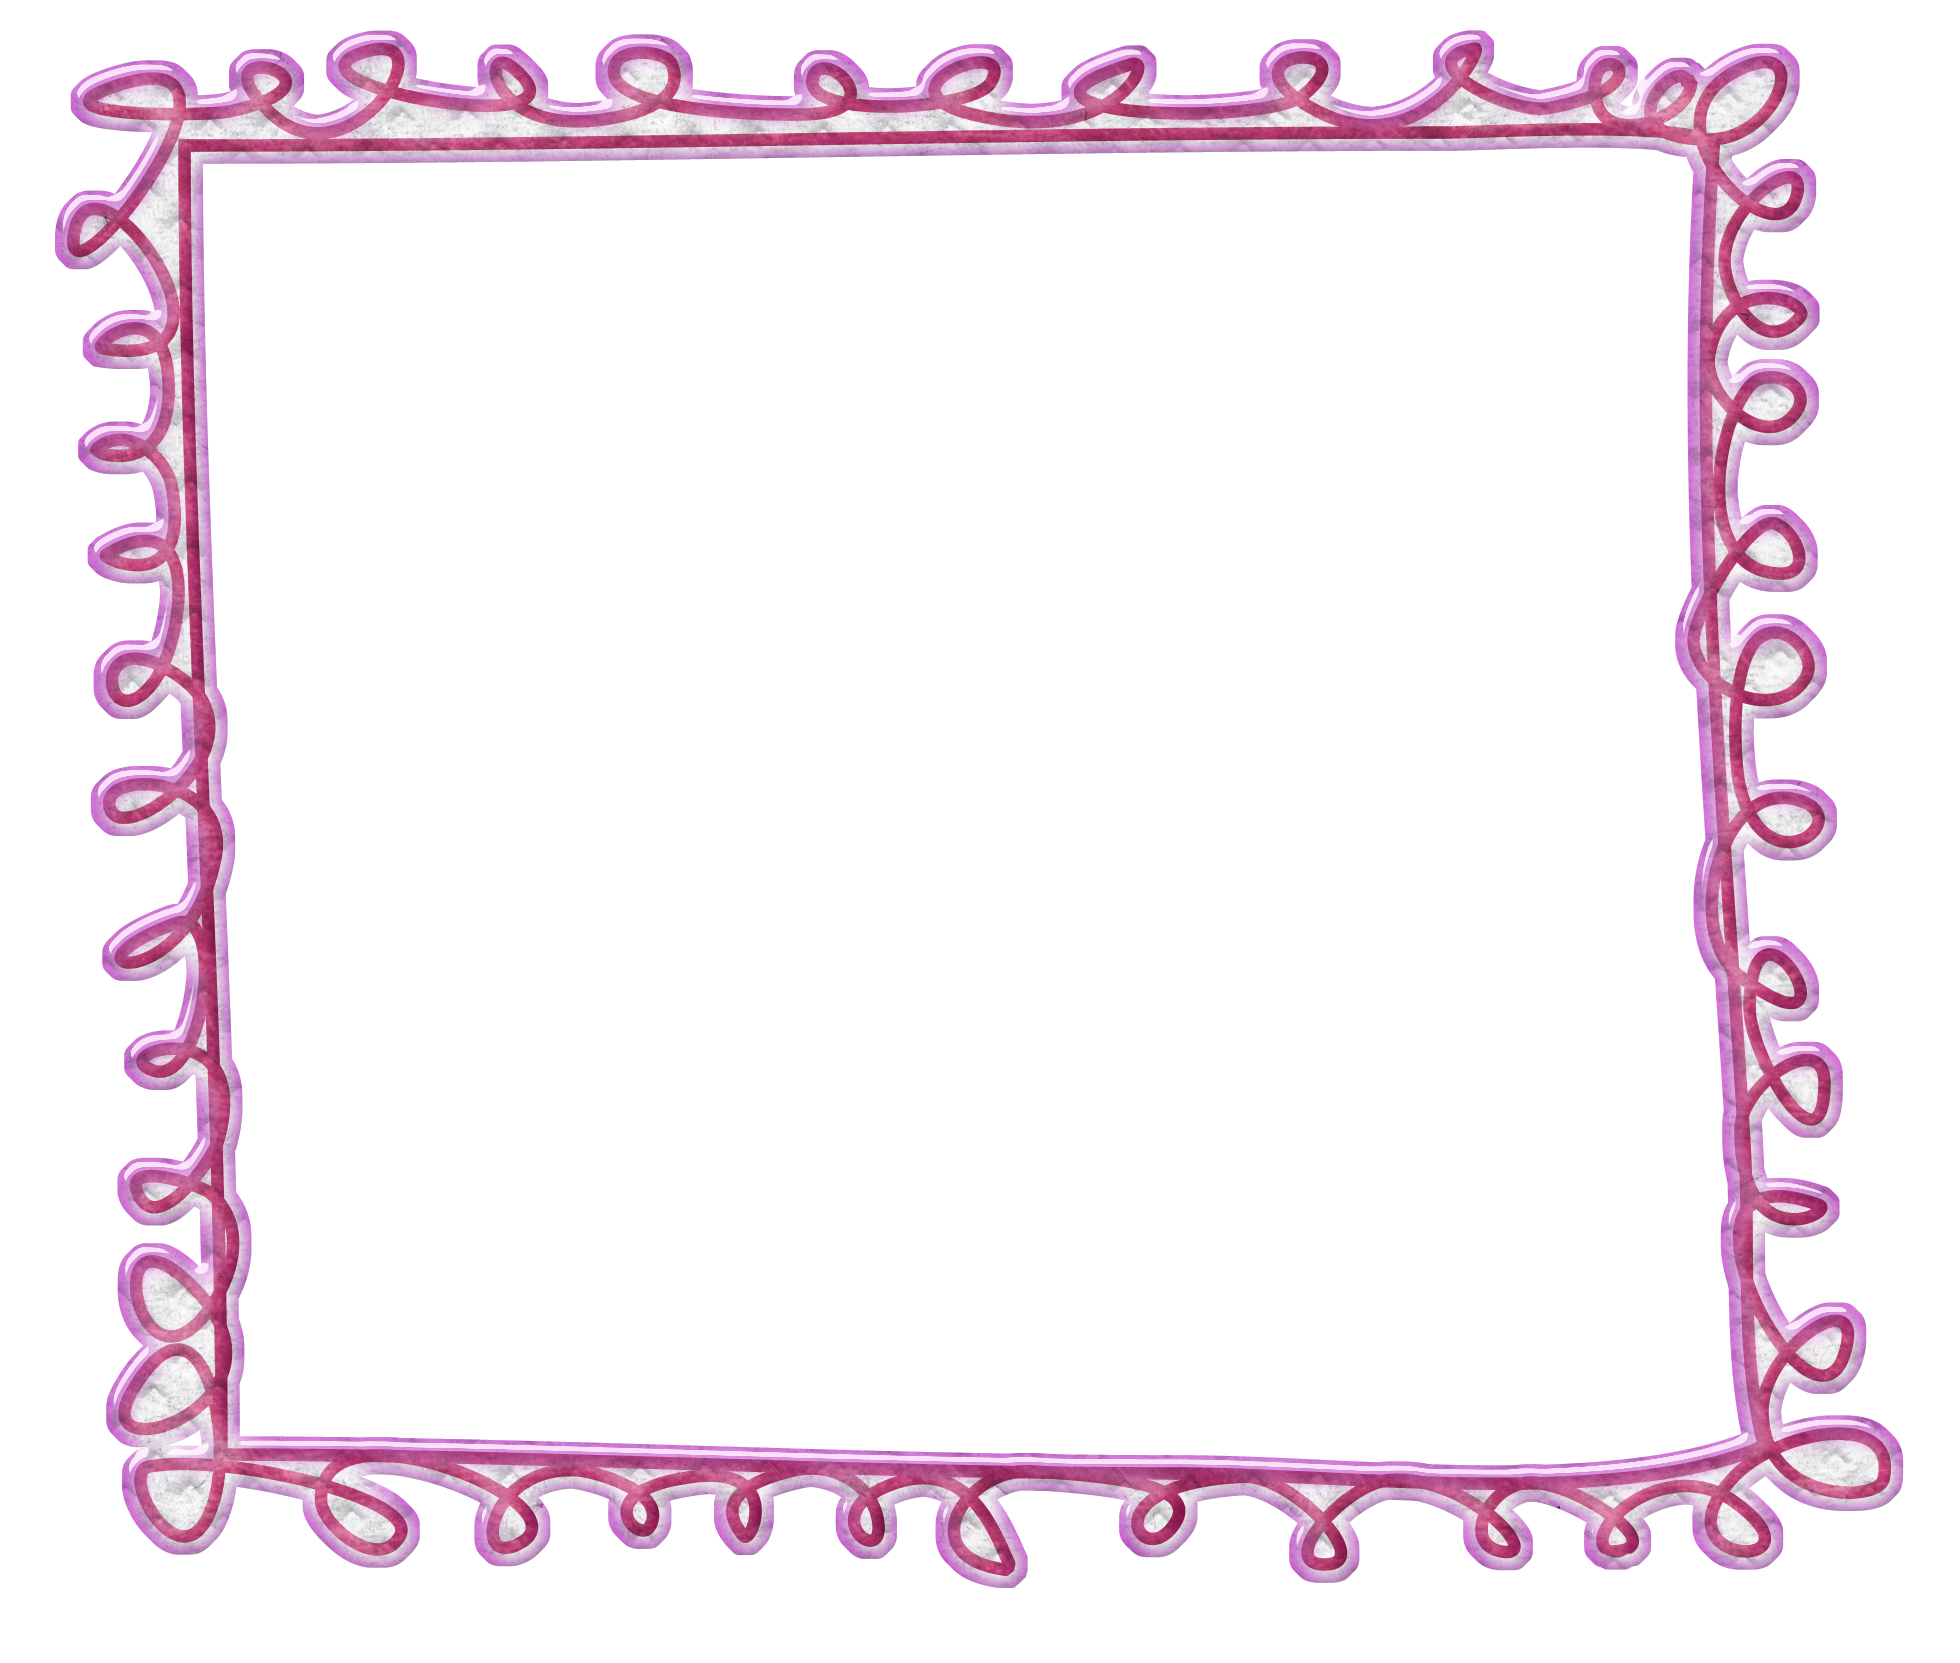 Jewish people clip art. Square clipart pink square